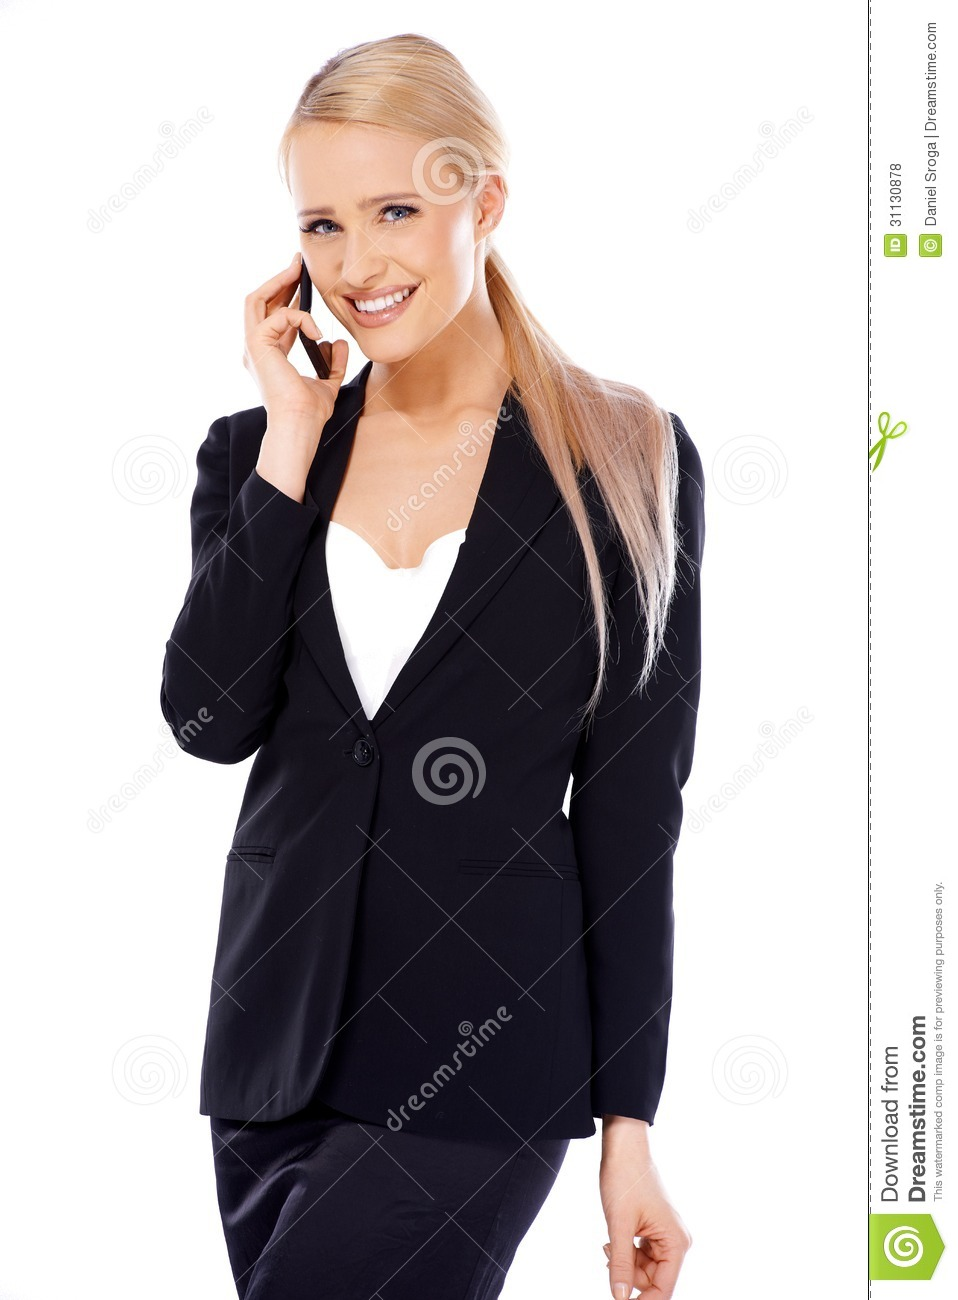 Blond Business Woman Using Mobile Phone by Daniel_Dash